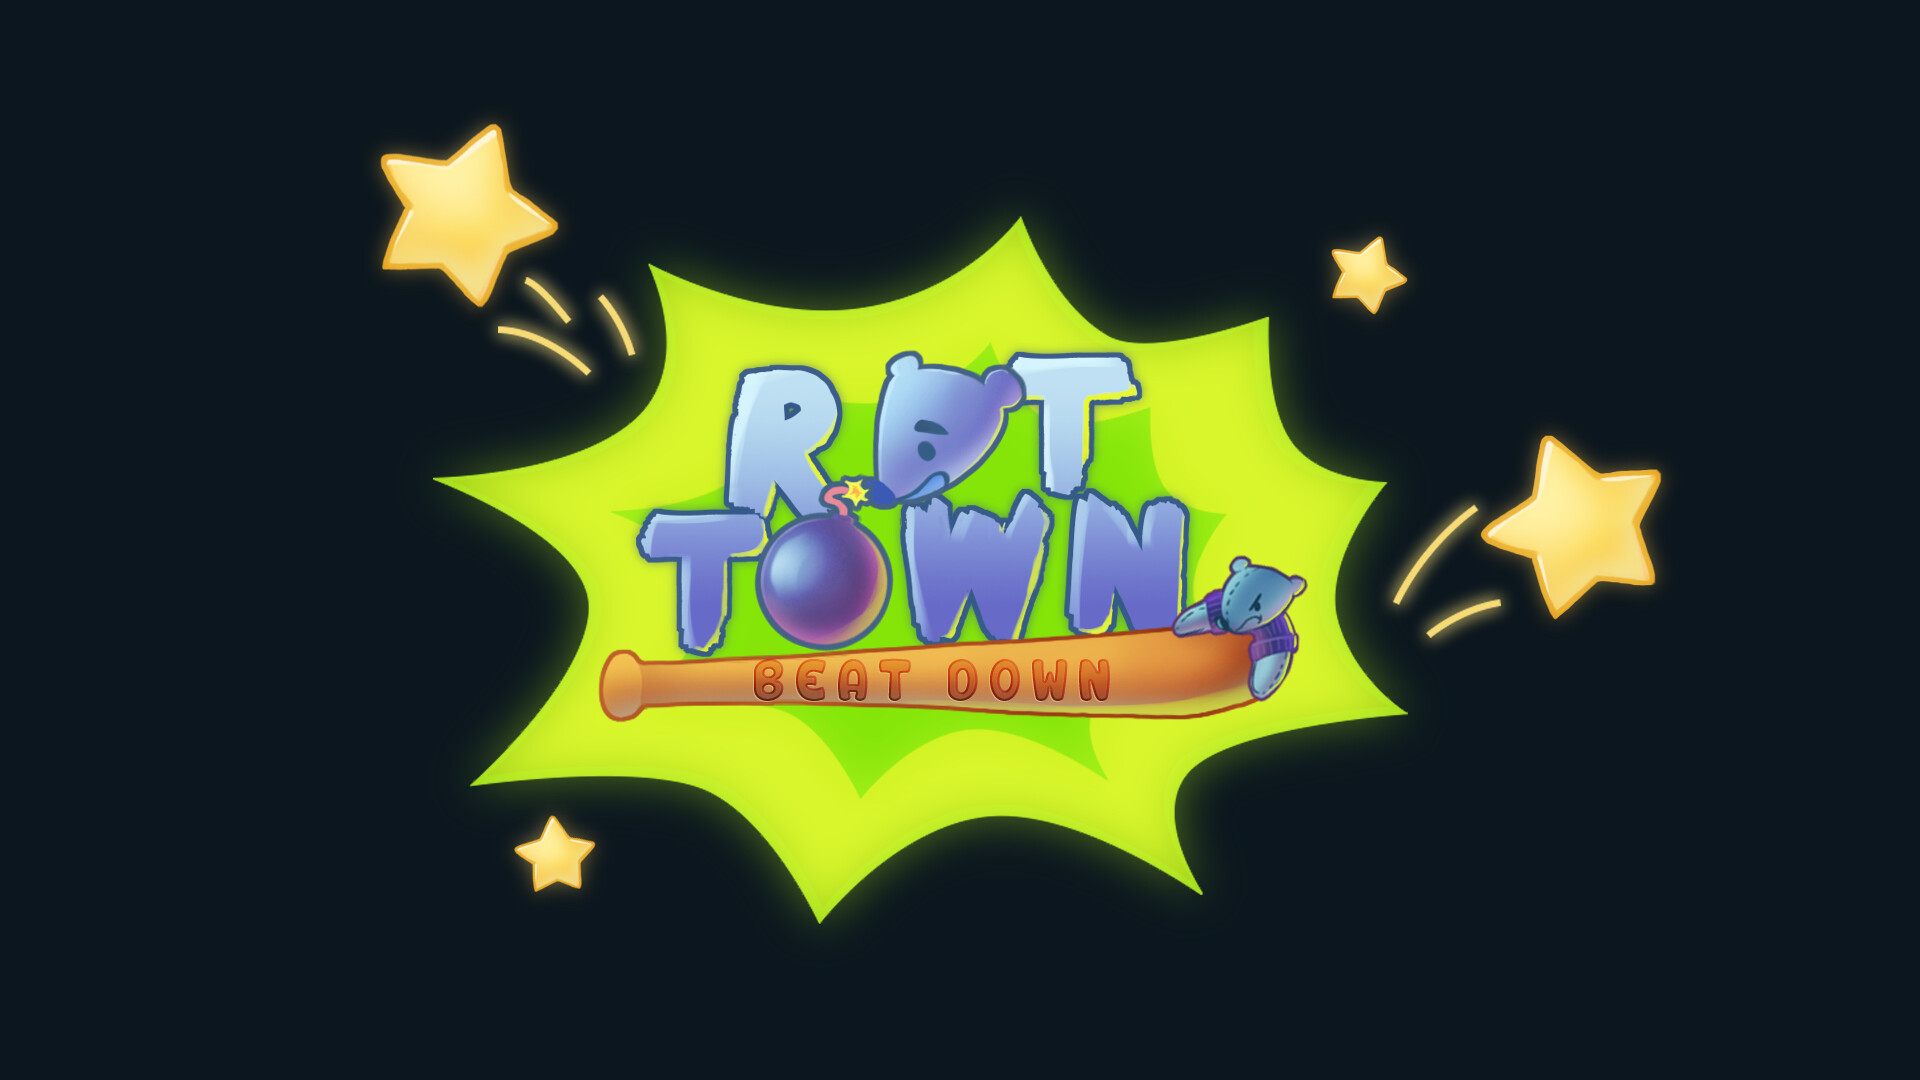 """Final logo and menu screen. The """"bonk"""" colour was changed to lime green to fit the green sewer goo in the game. The font was also changed to a less cutesy and rounded font to fit the grungy sewer theme also."""